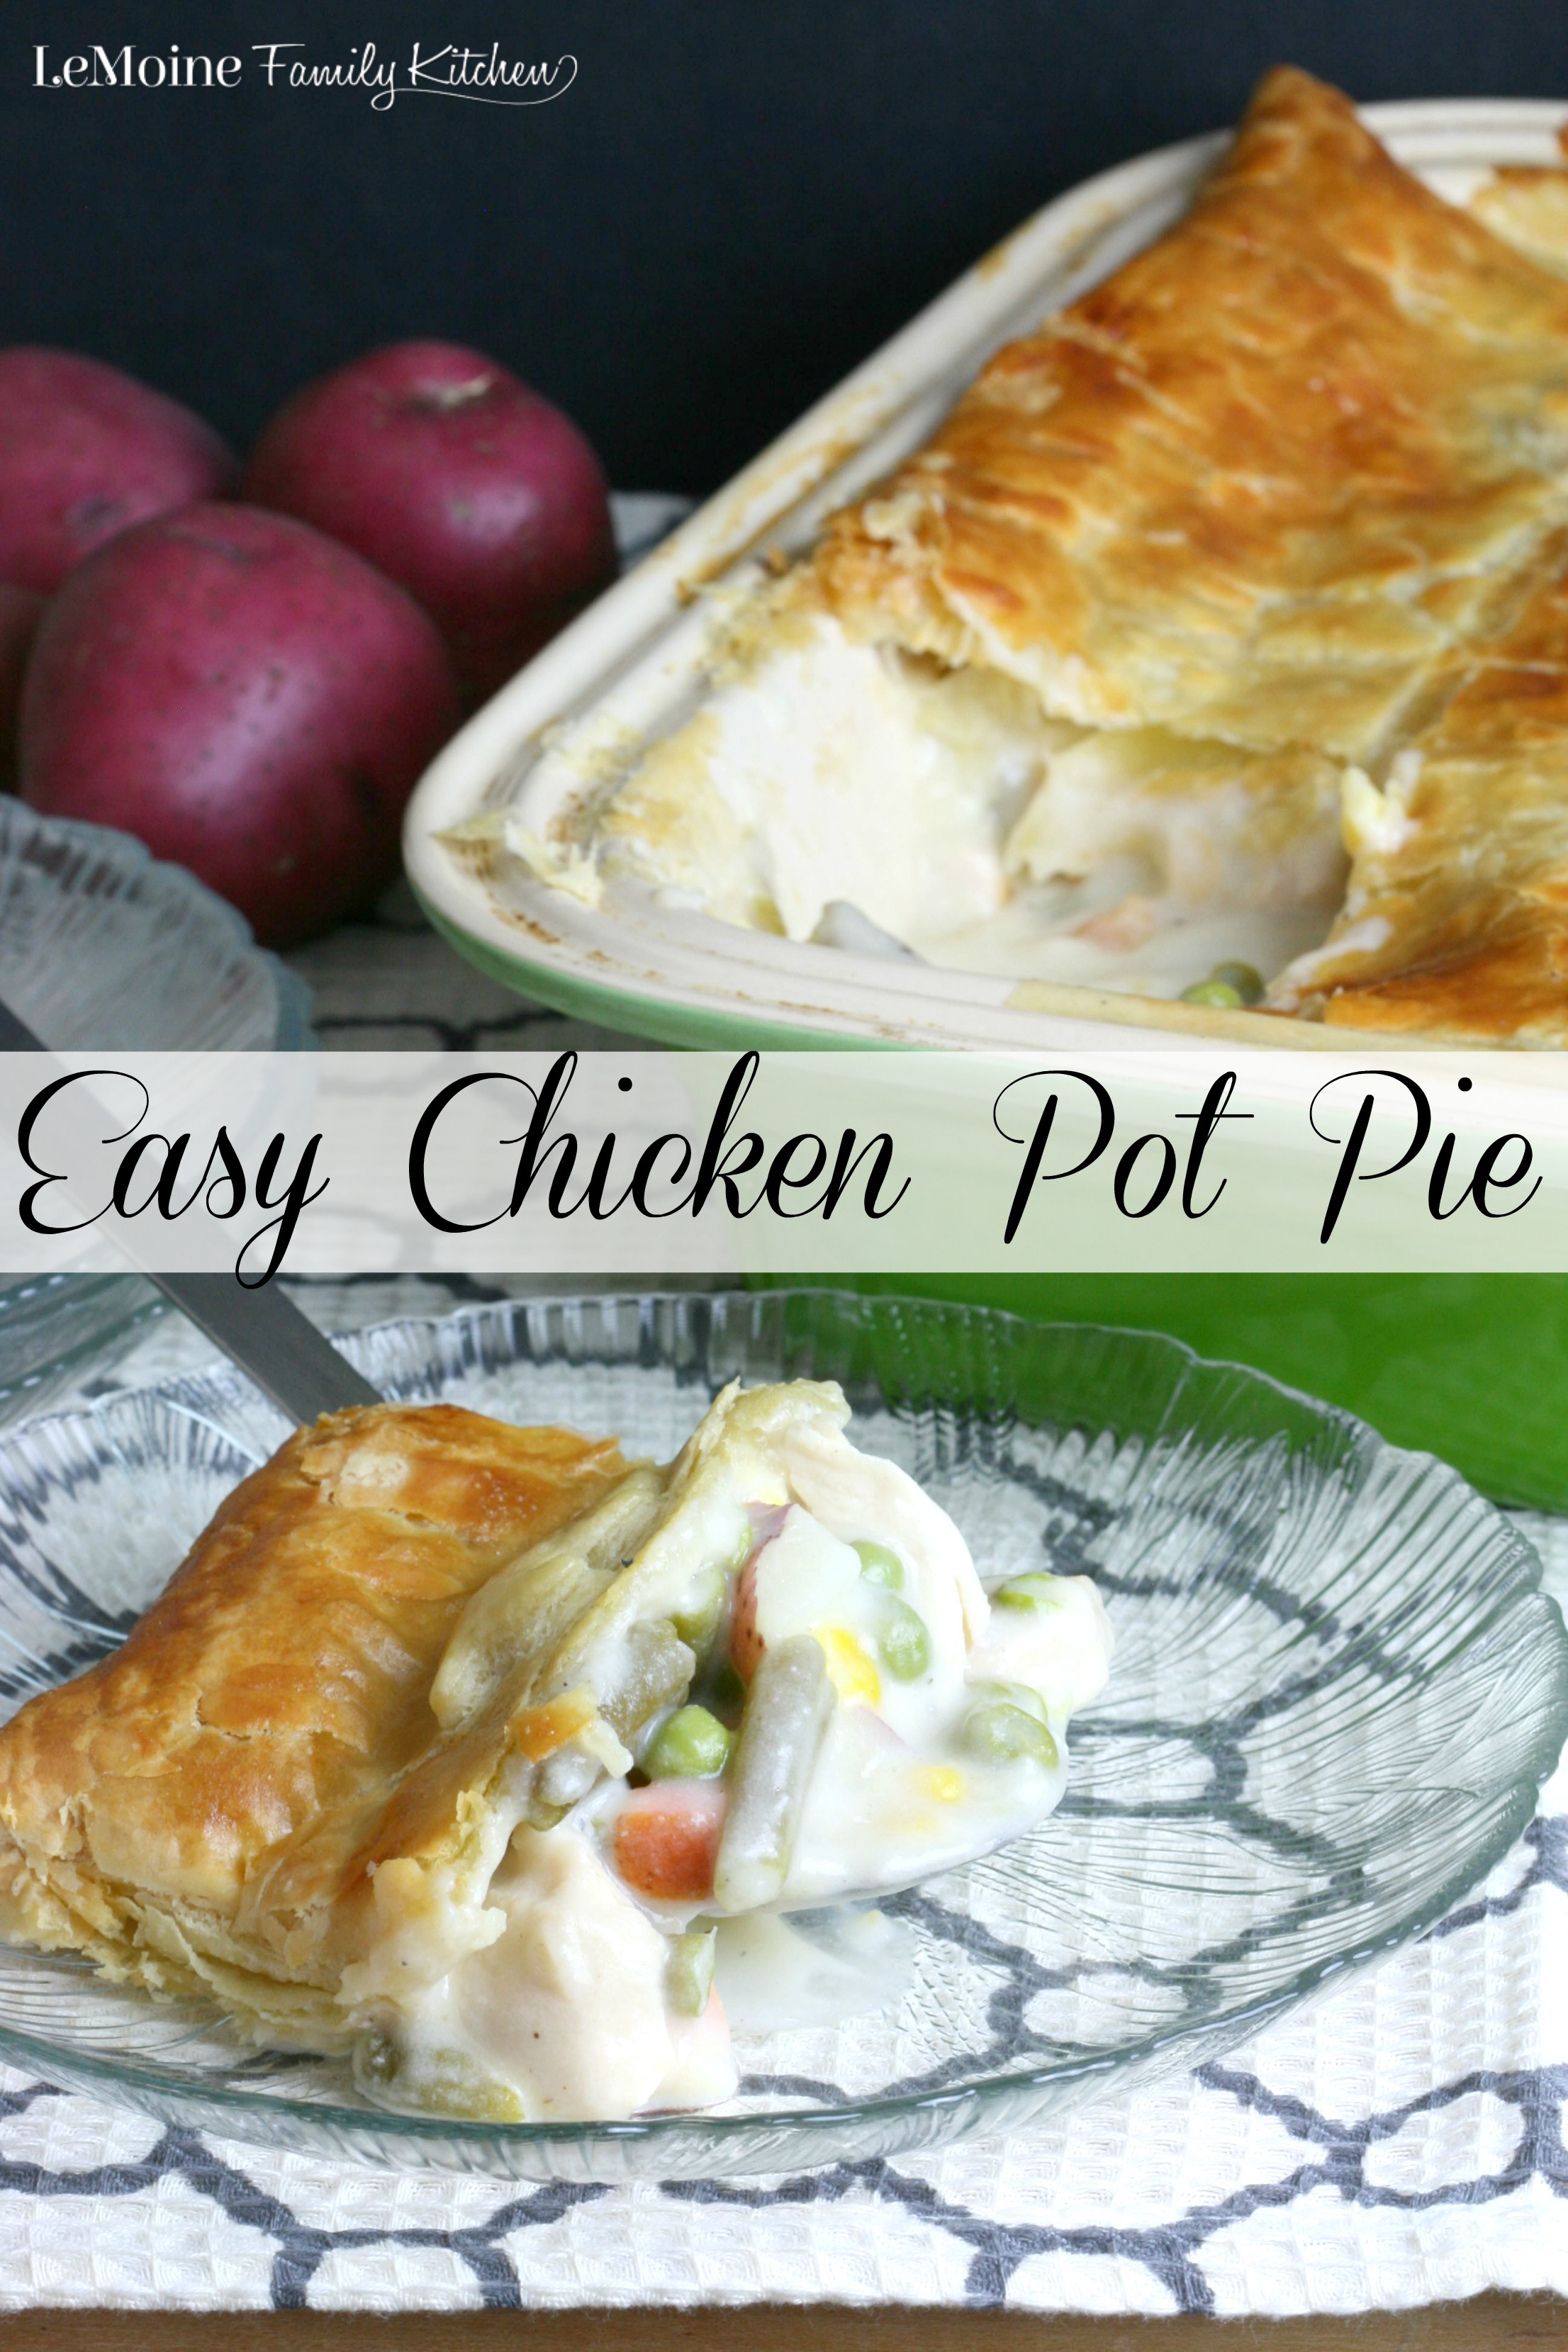 Easy Chicken Pot Pie | LeMoine Family Kitchen . An all American ...